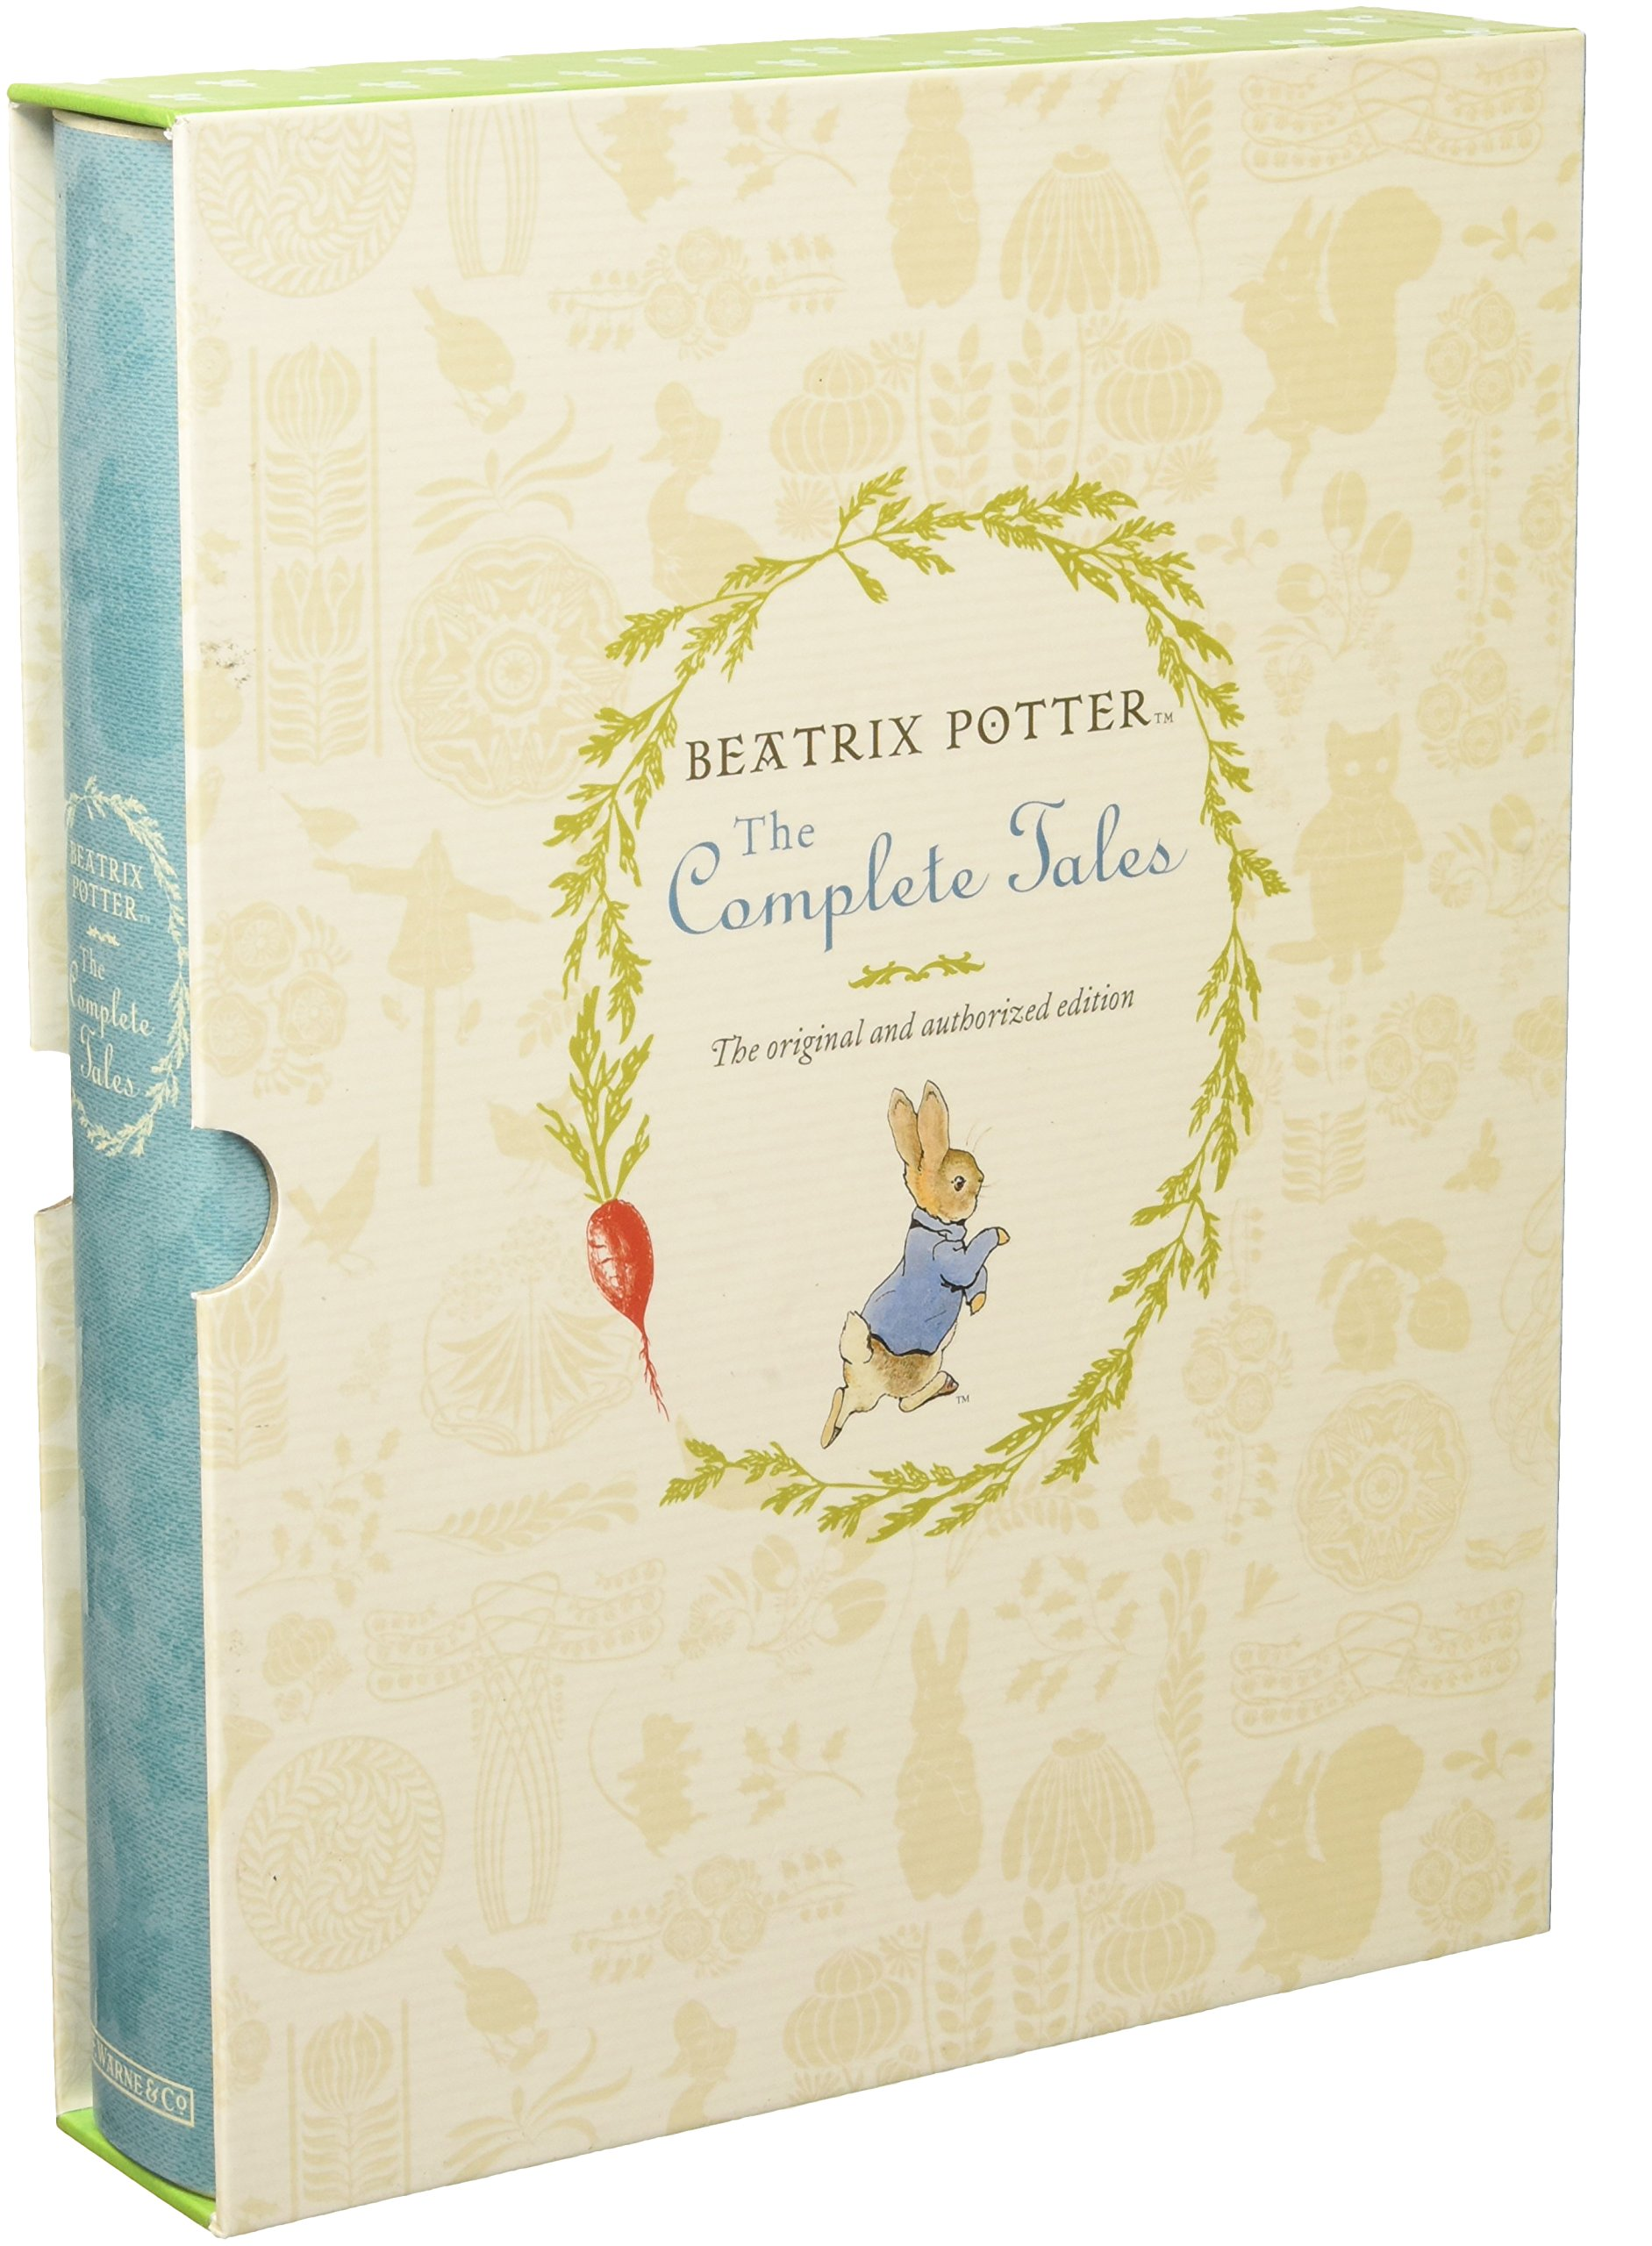 Beatrix Potter the Complete Tales (Peter Rabbit) by Frederick Warne and Company (Image #3)